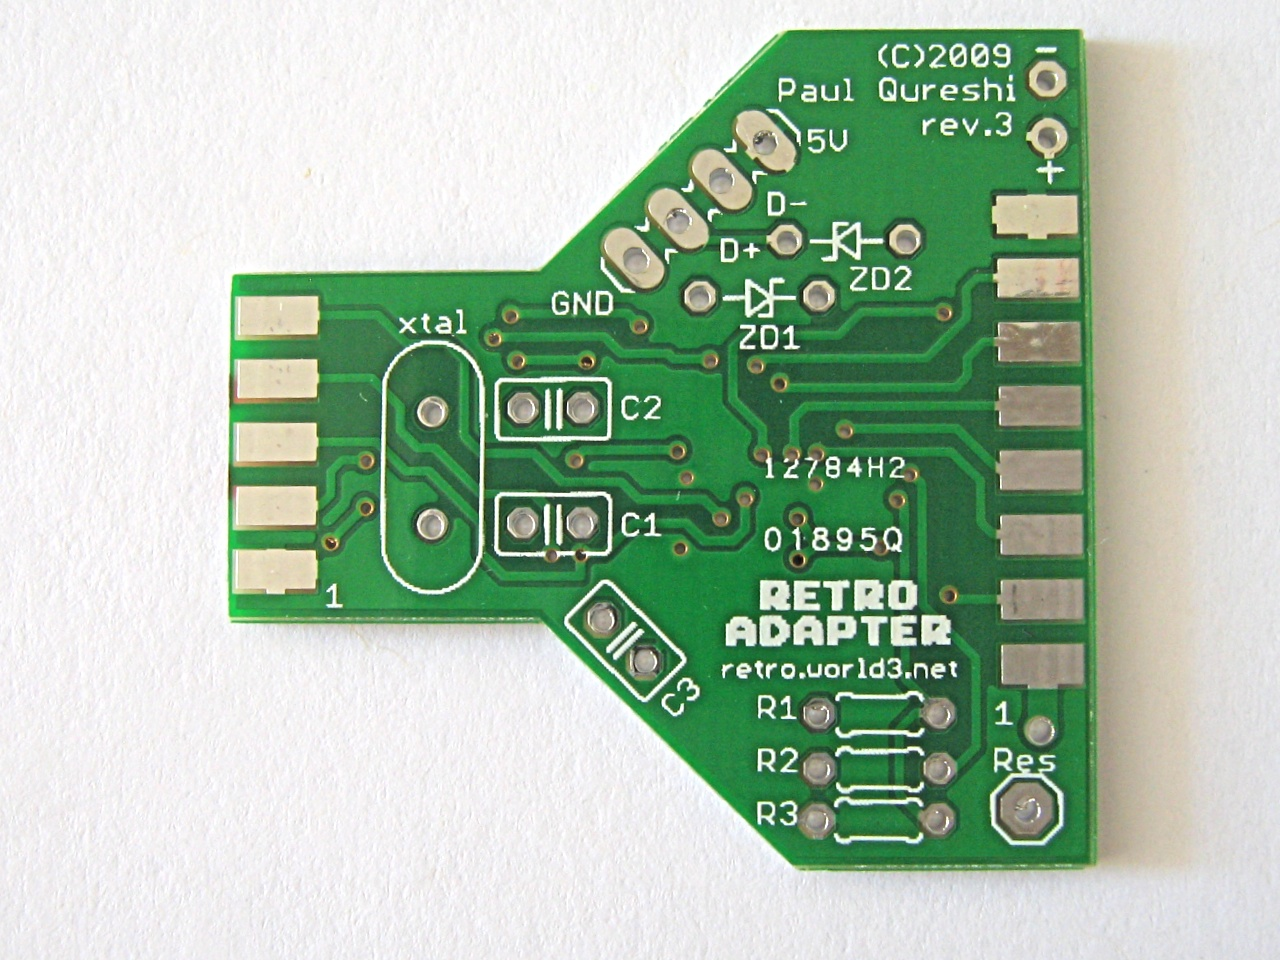 Retro Adapter Dualshock 2 Wiring Diagram Pcb Rev